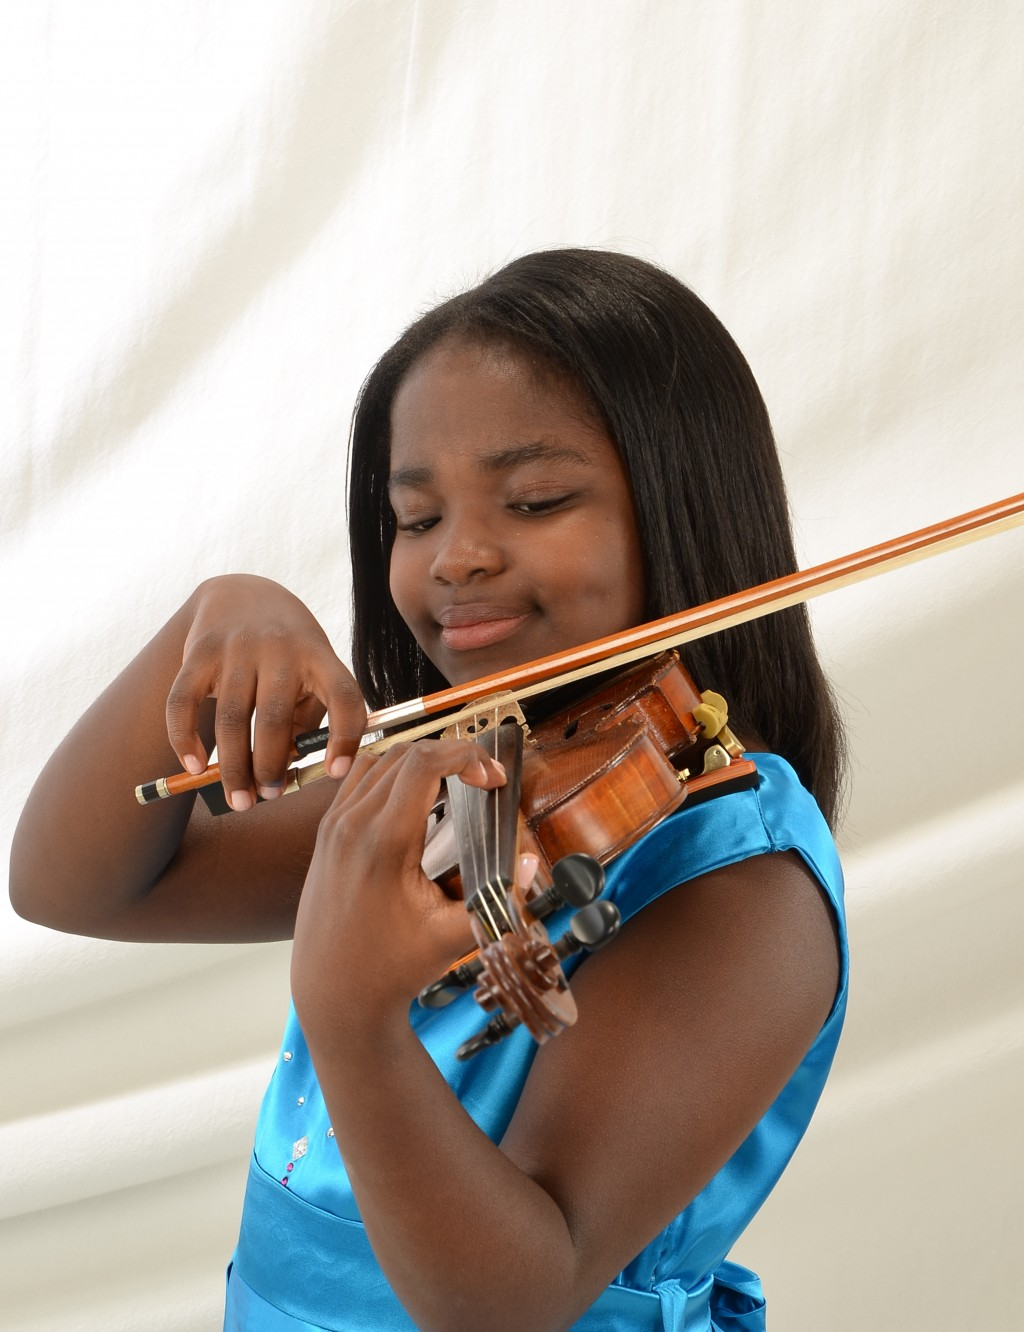 11-yr-old Violin Virtuoso Hopes to Increase Diversity in